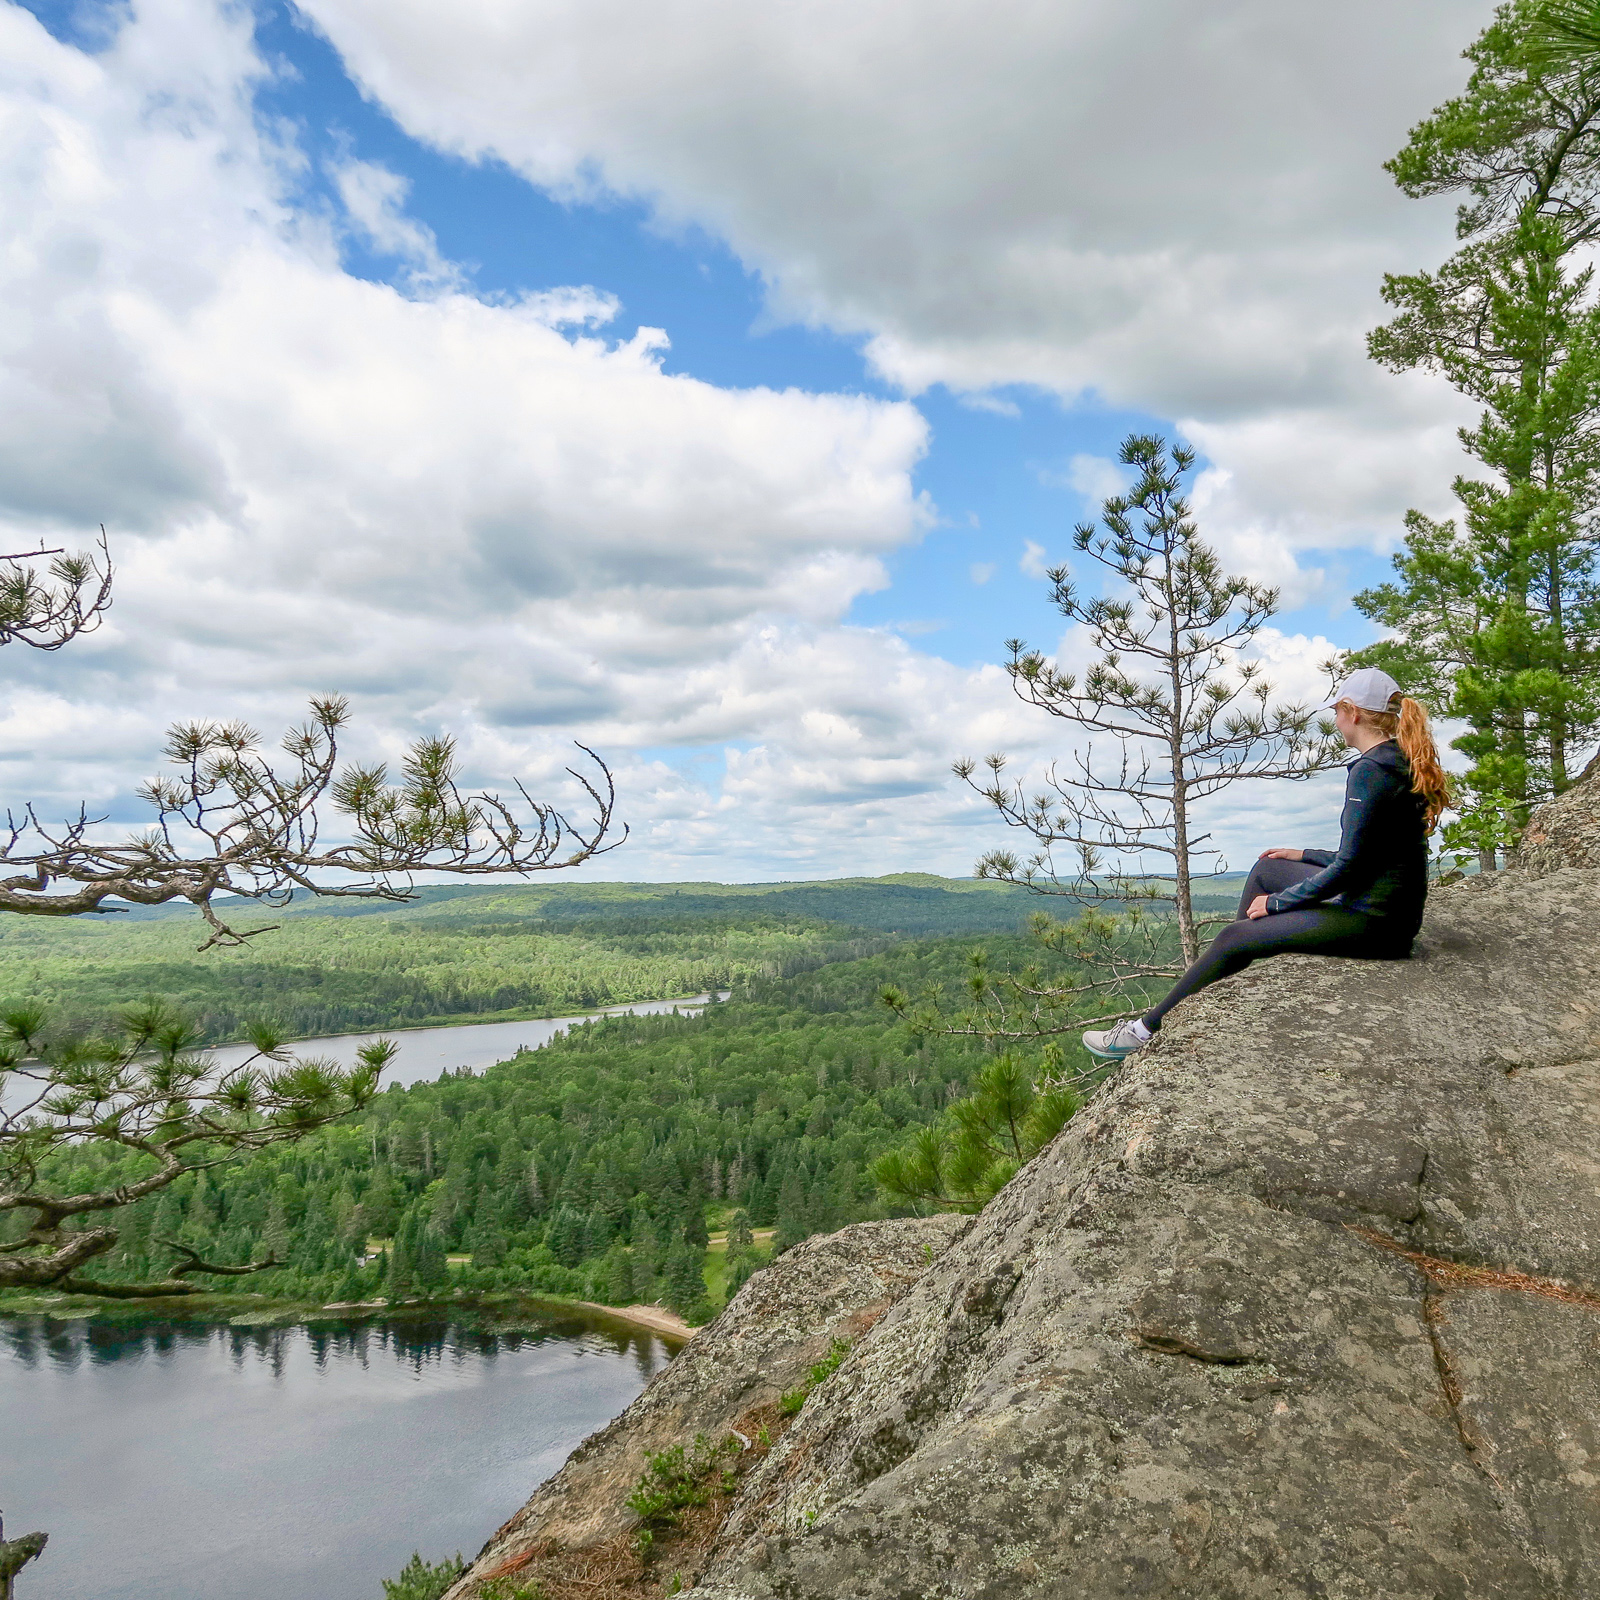 a3ad286fde12 Day Hiking in Algonquin Provincial Park - Algonquin Outfitters ...